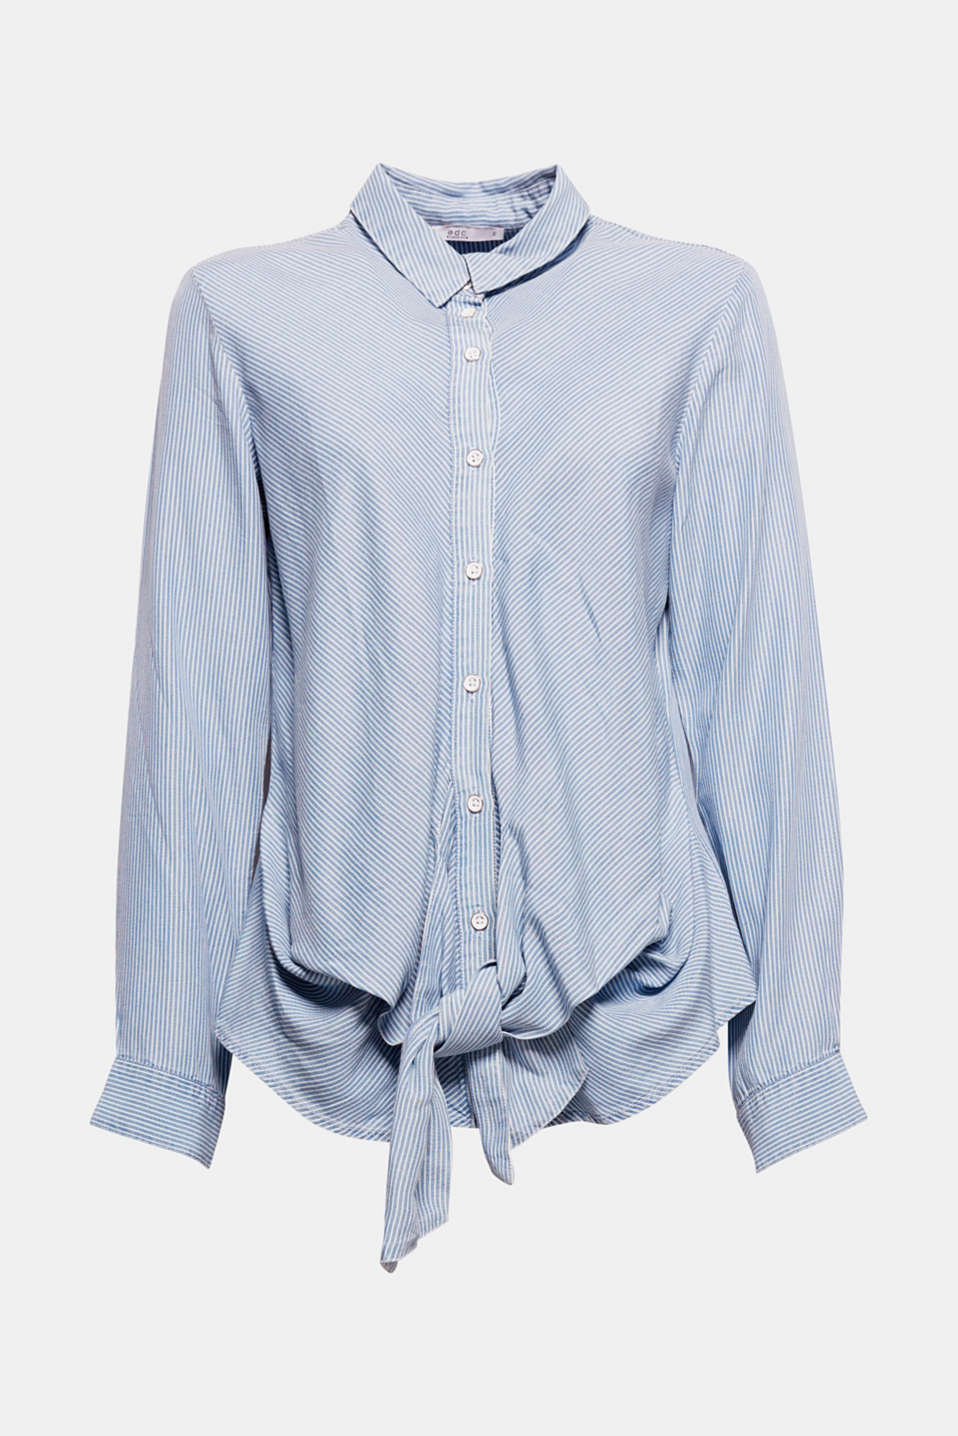 Casual, stylish and feminine! This blouse is defined by its casual fit, lightweight fabric and feminine knotted detail at the front.